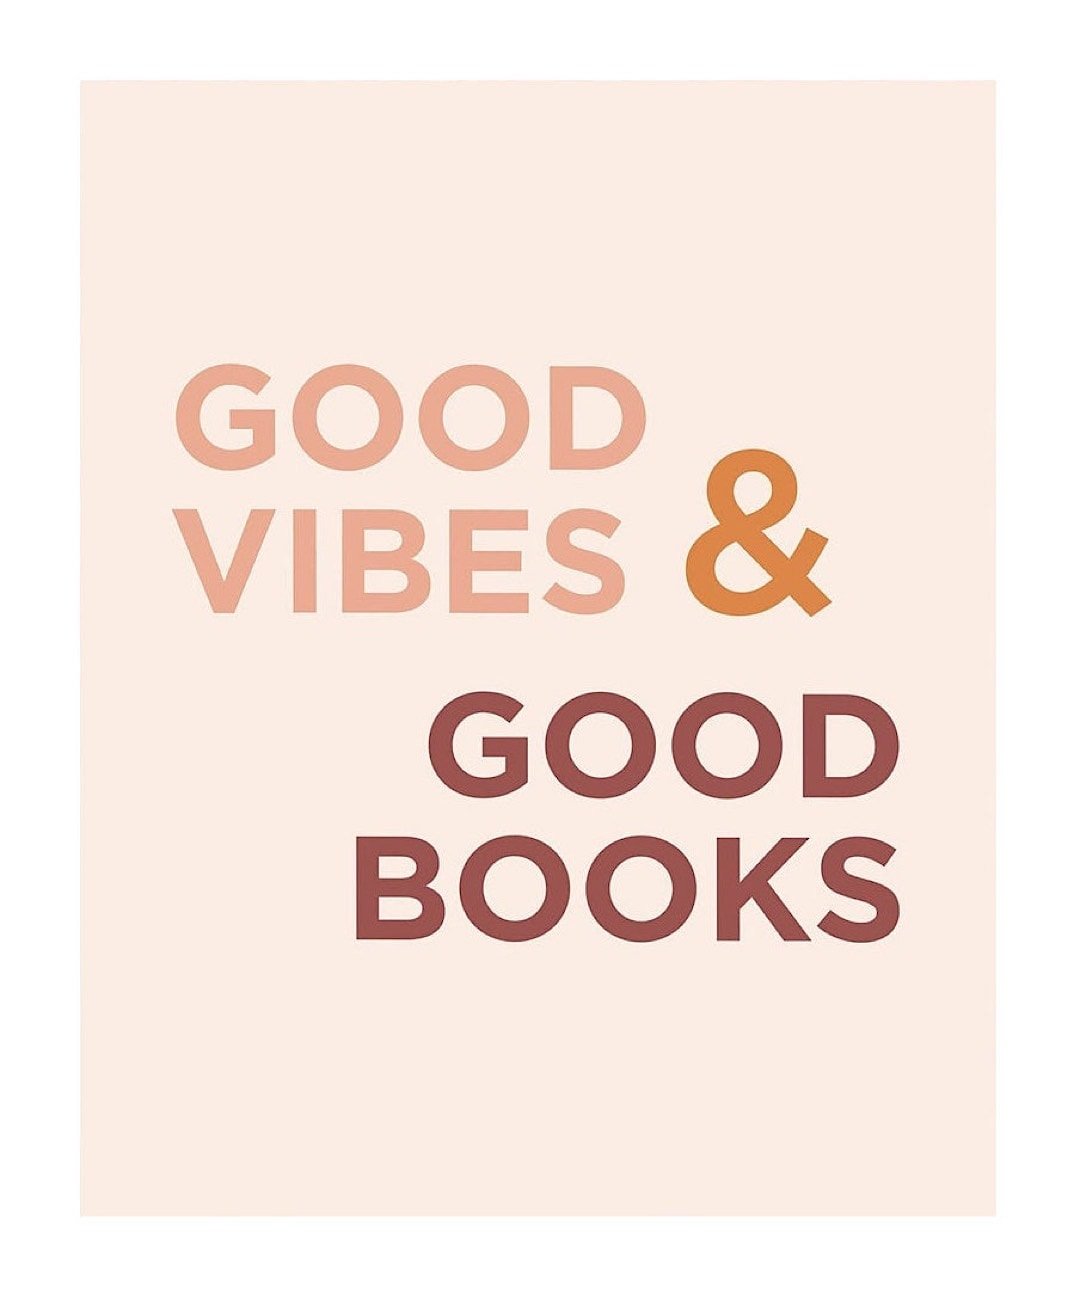 Good vibes and good books - best read posters